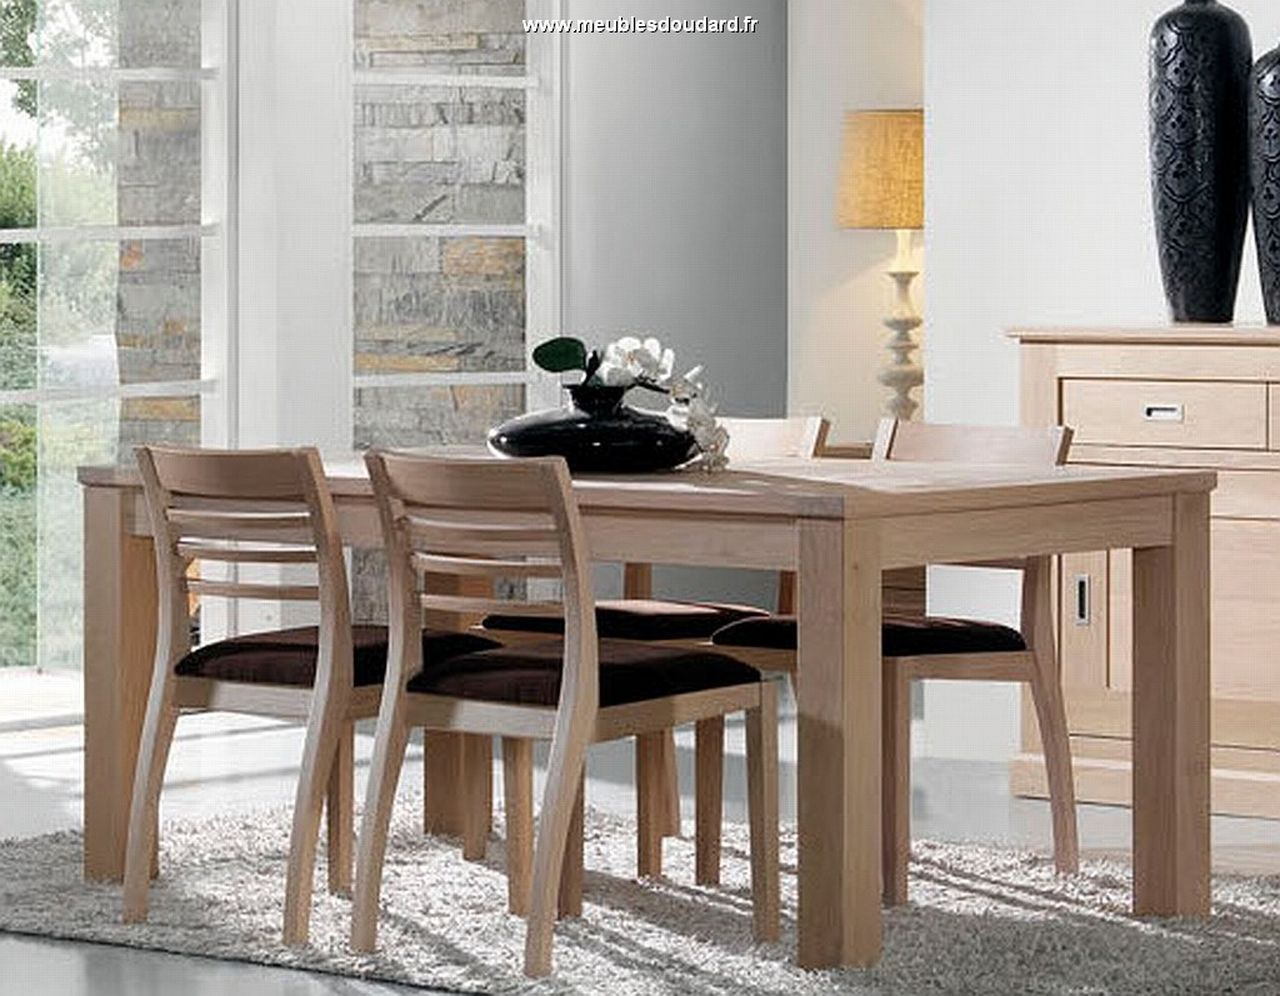 Meubles contemporains en bois massif for Table salle manger